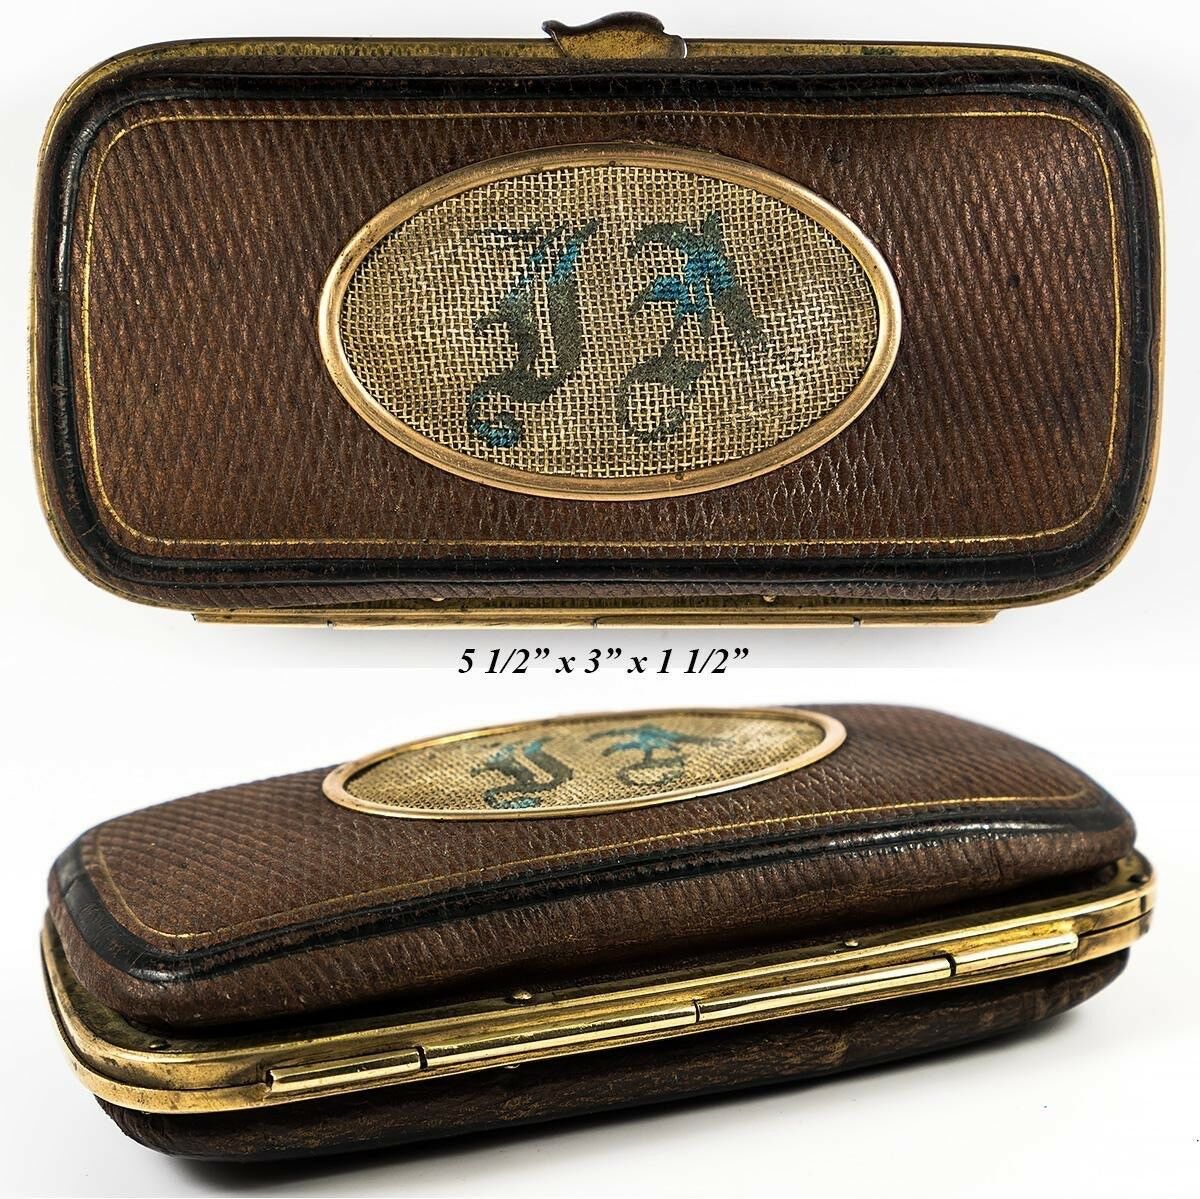 Antique French Embroidered Cigar Case, Spectacles Etui, Gold Embossed Leather